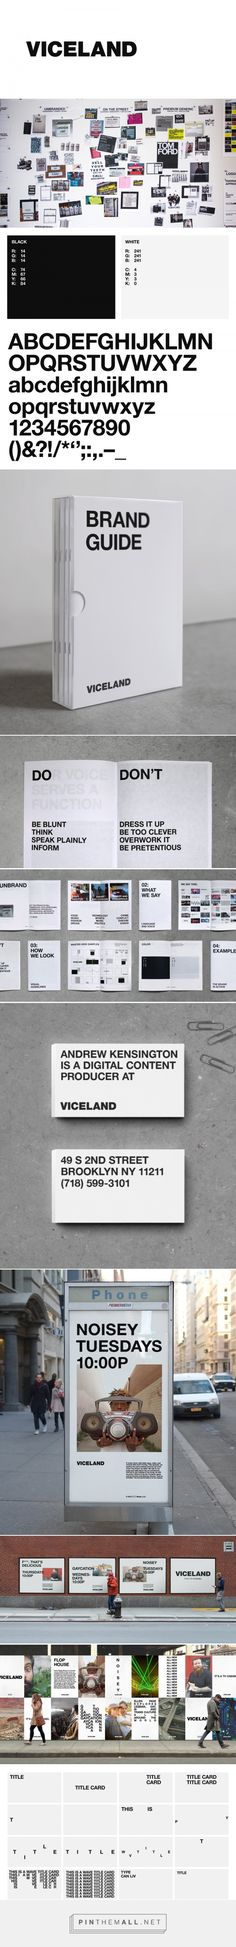 """The branding for Vice's new TV channel, VICELAND, emphasizes whitespace over all other design elements. The simplicity of their designs, often just bold type against a white or black background, suggests straightforwardness and boldness of vision. Viceland's brand styling reinforces their identity as a source of news that speaks to their audience frankly and with blunt candor. The use of whitespace underscores that Viceland """"cuts through the bullshit."""""""